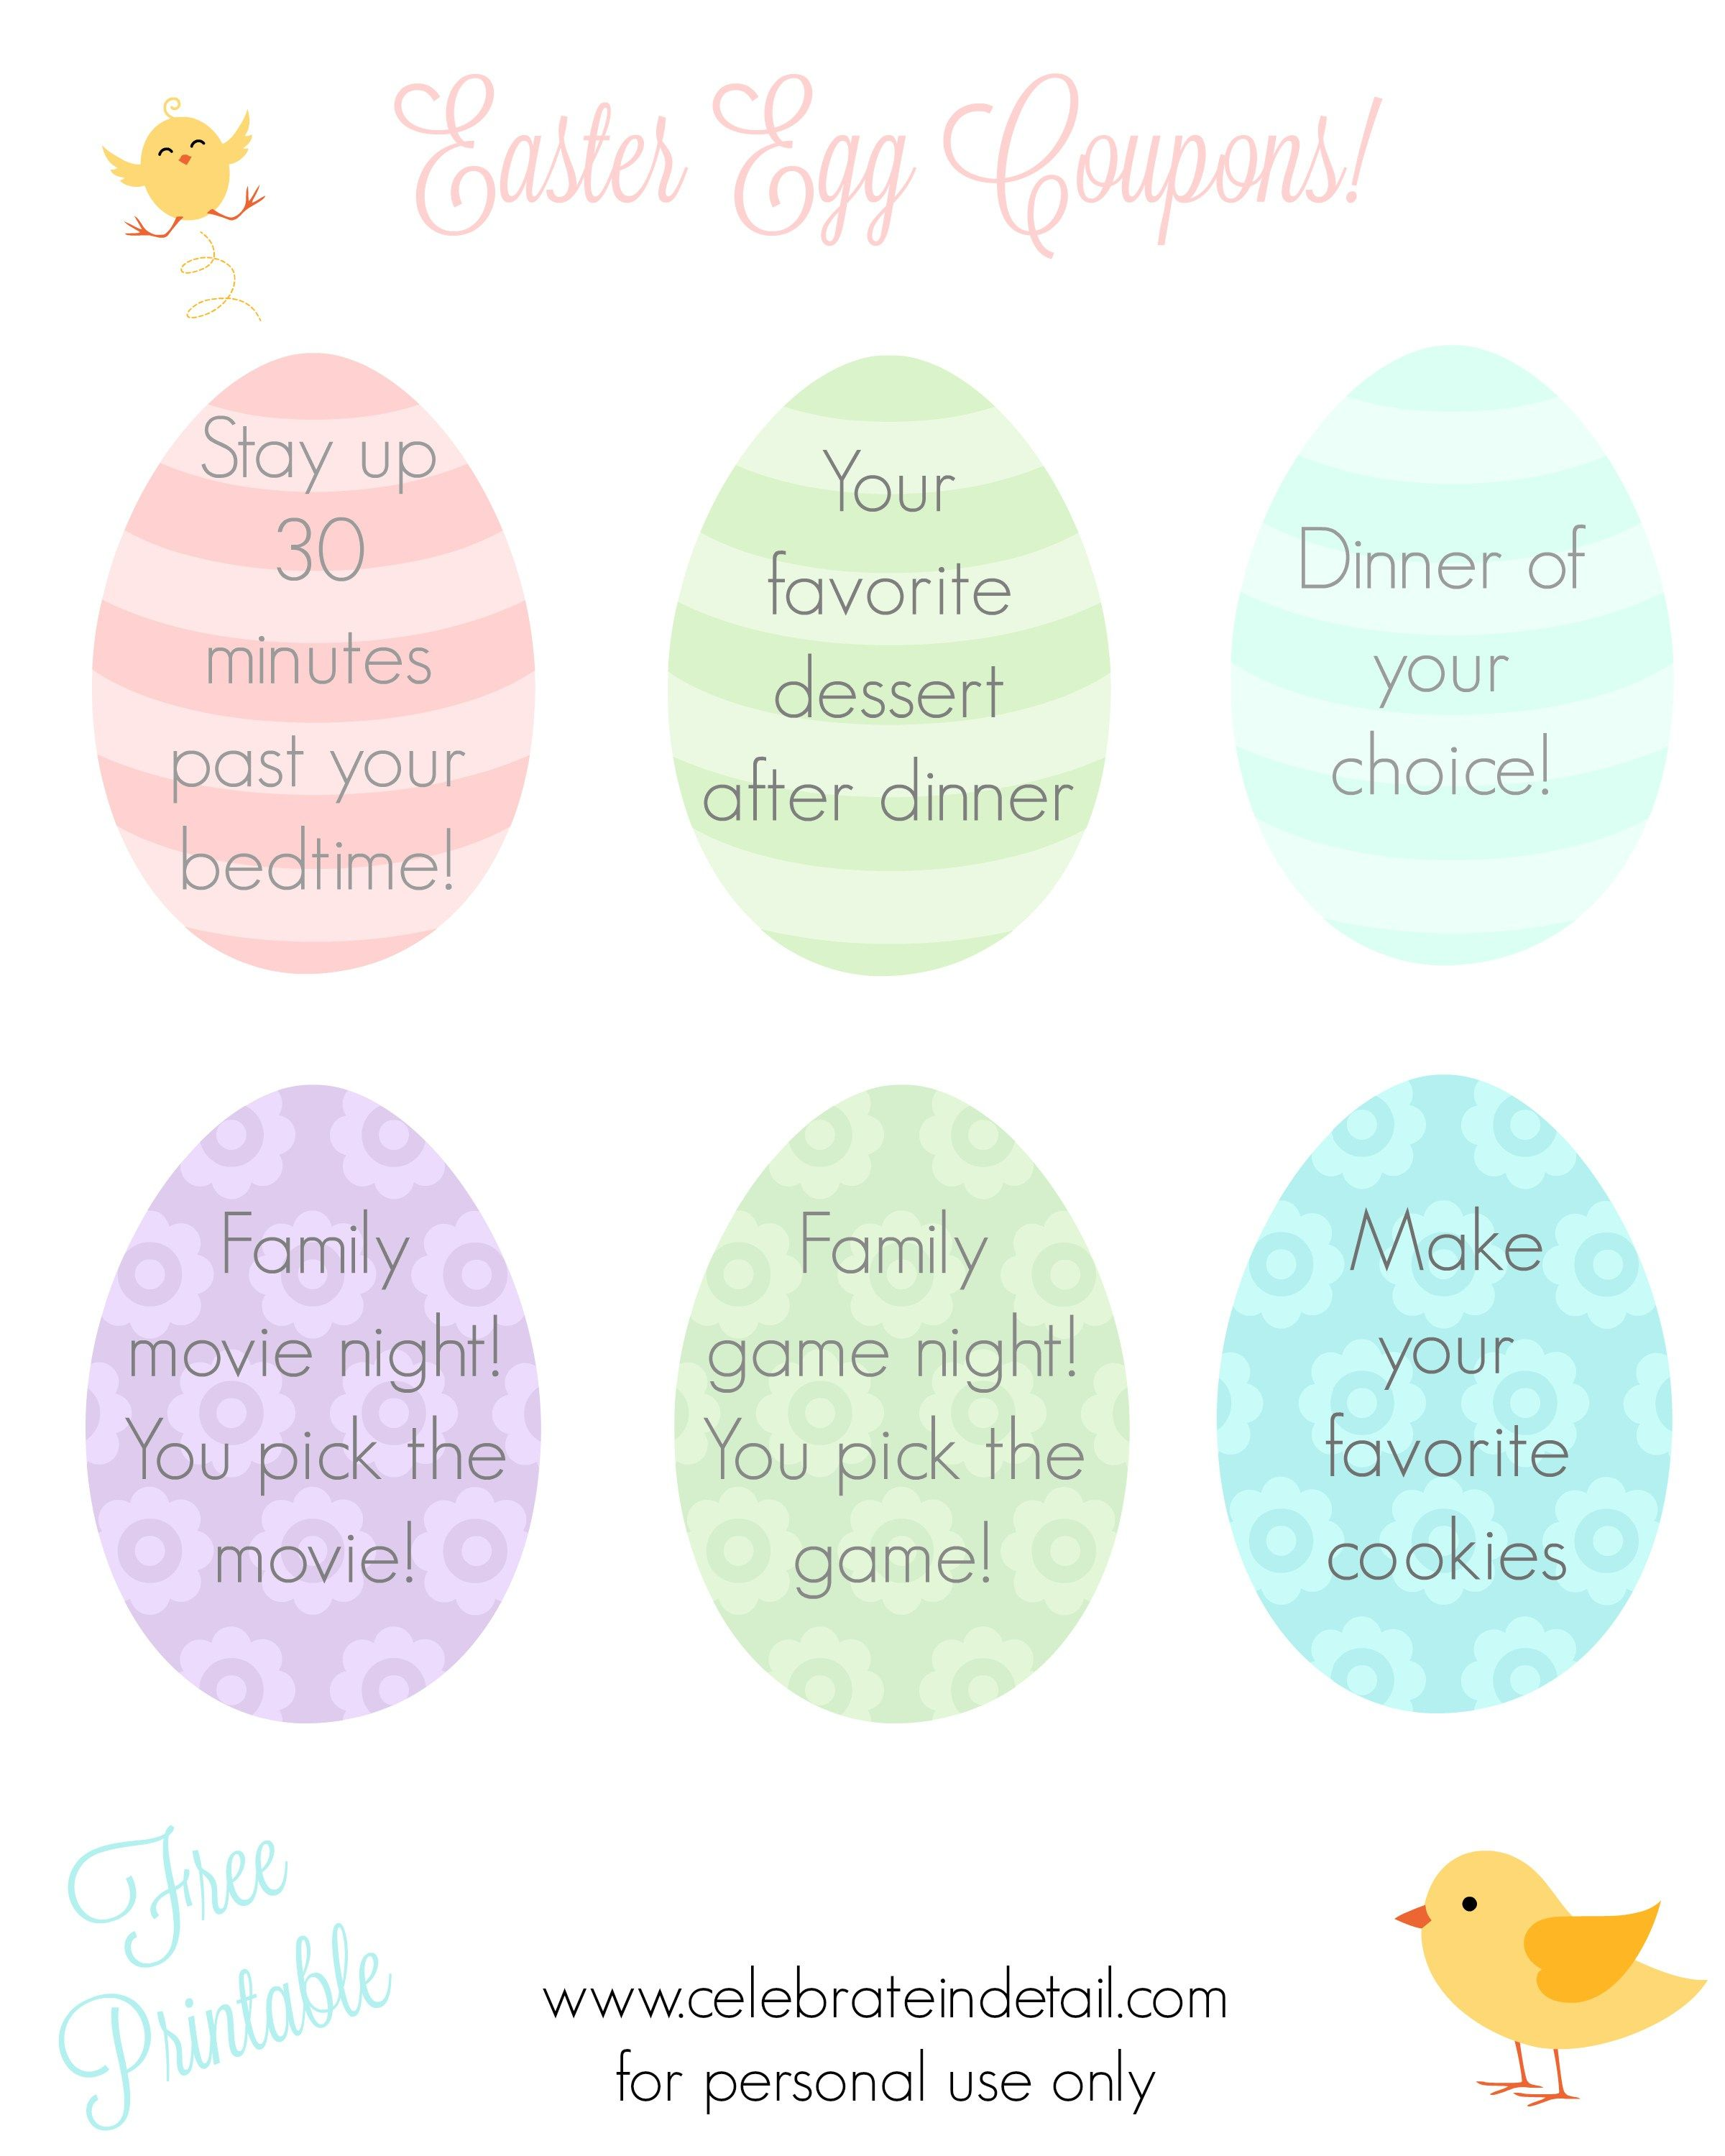 It's just a picture of Gorgeous Egg Coupons Printable